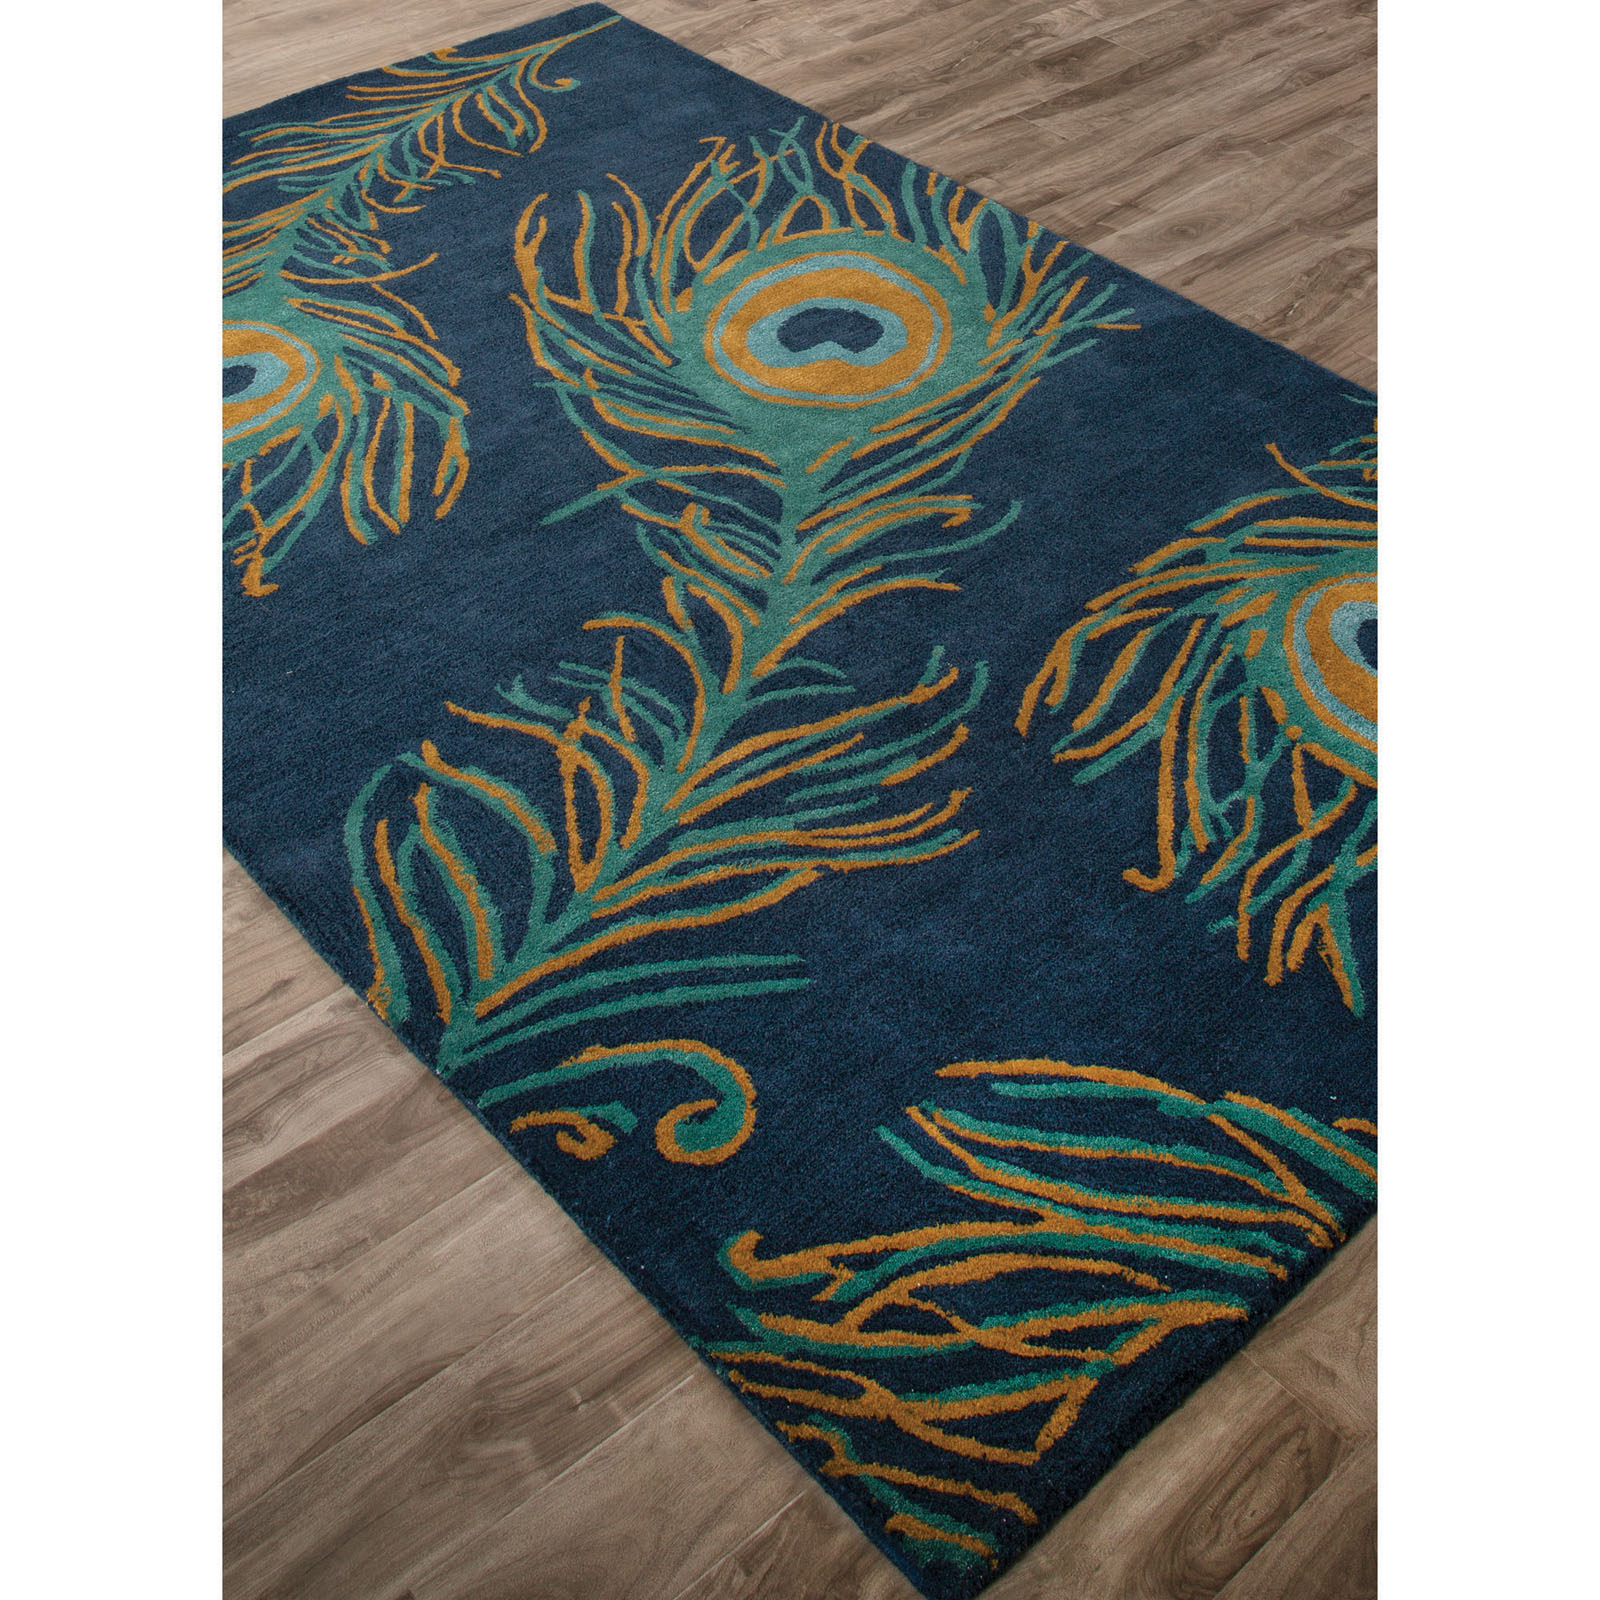 Jaipur Rugs National Geographic Home Collection Peacock